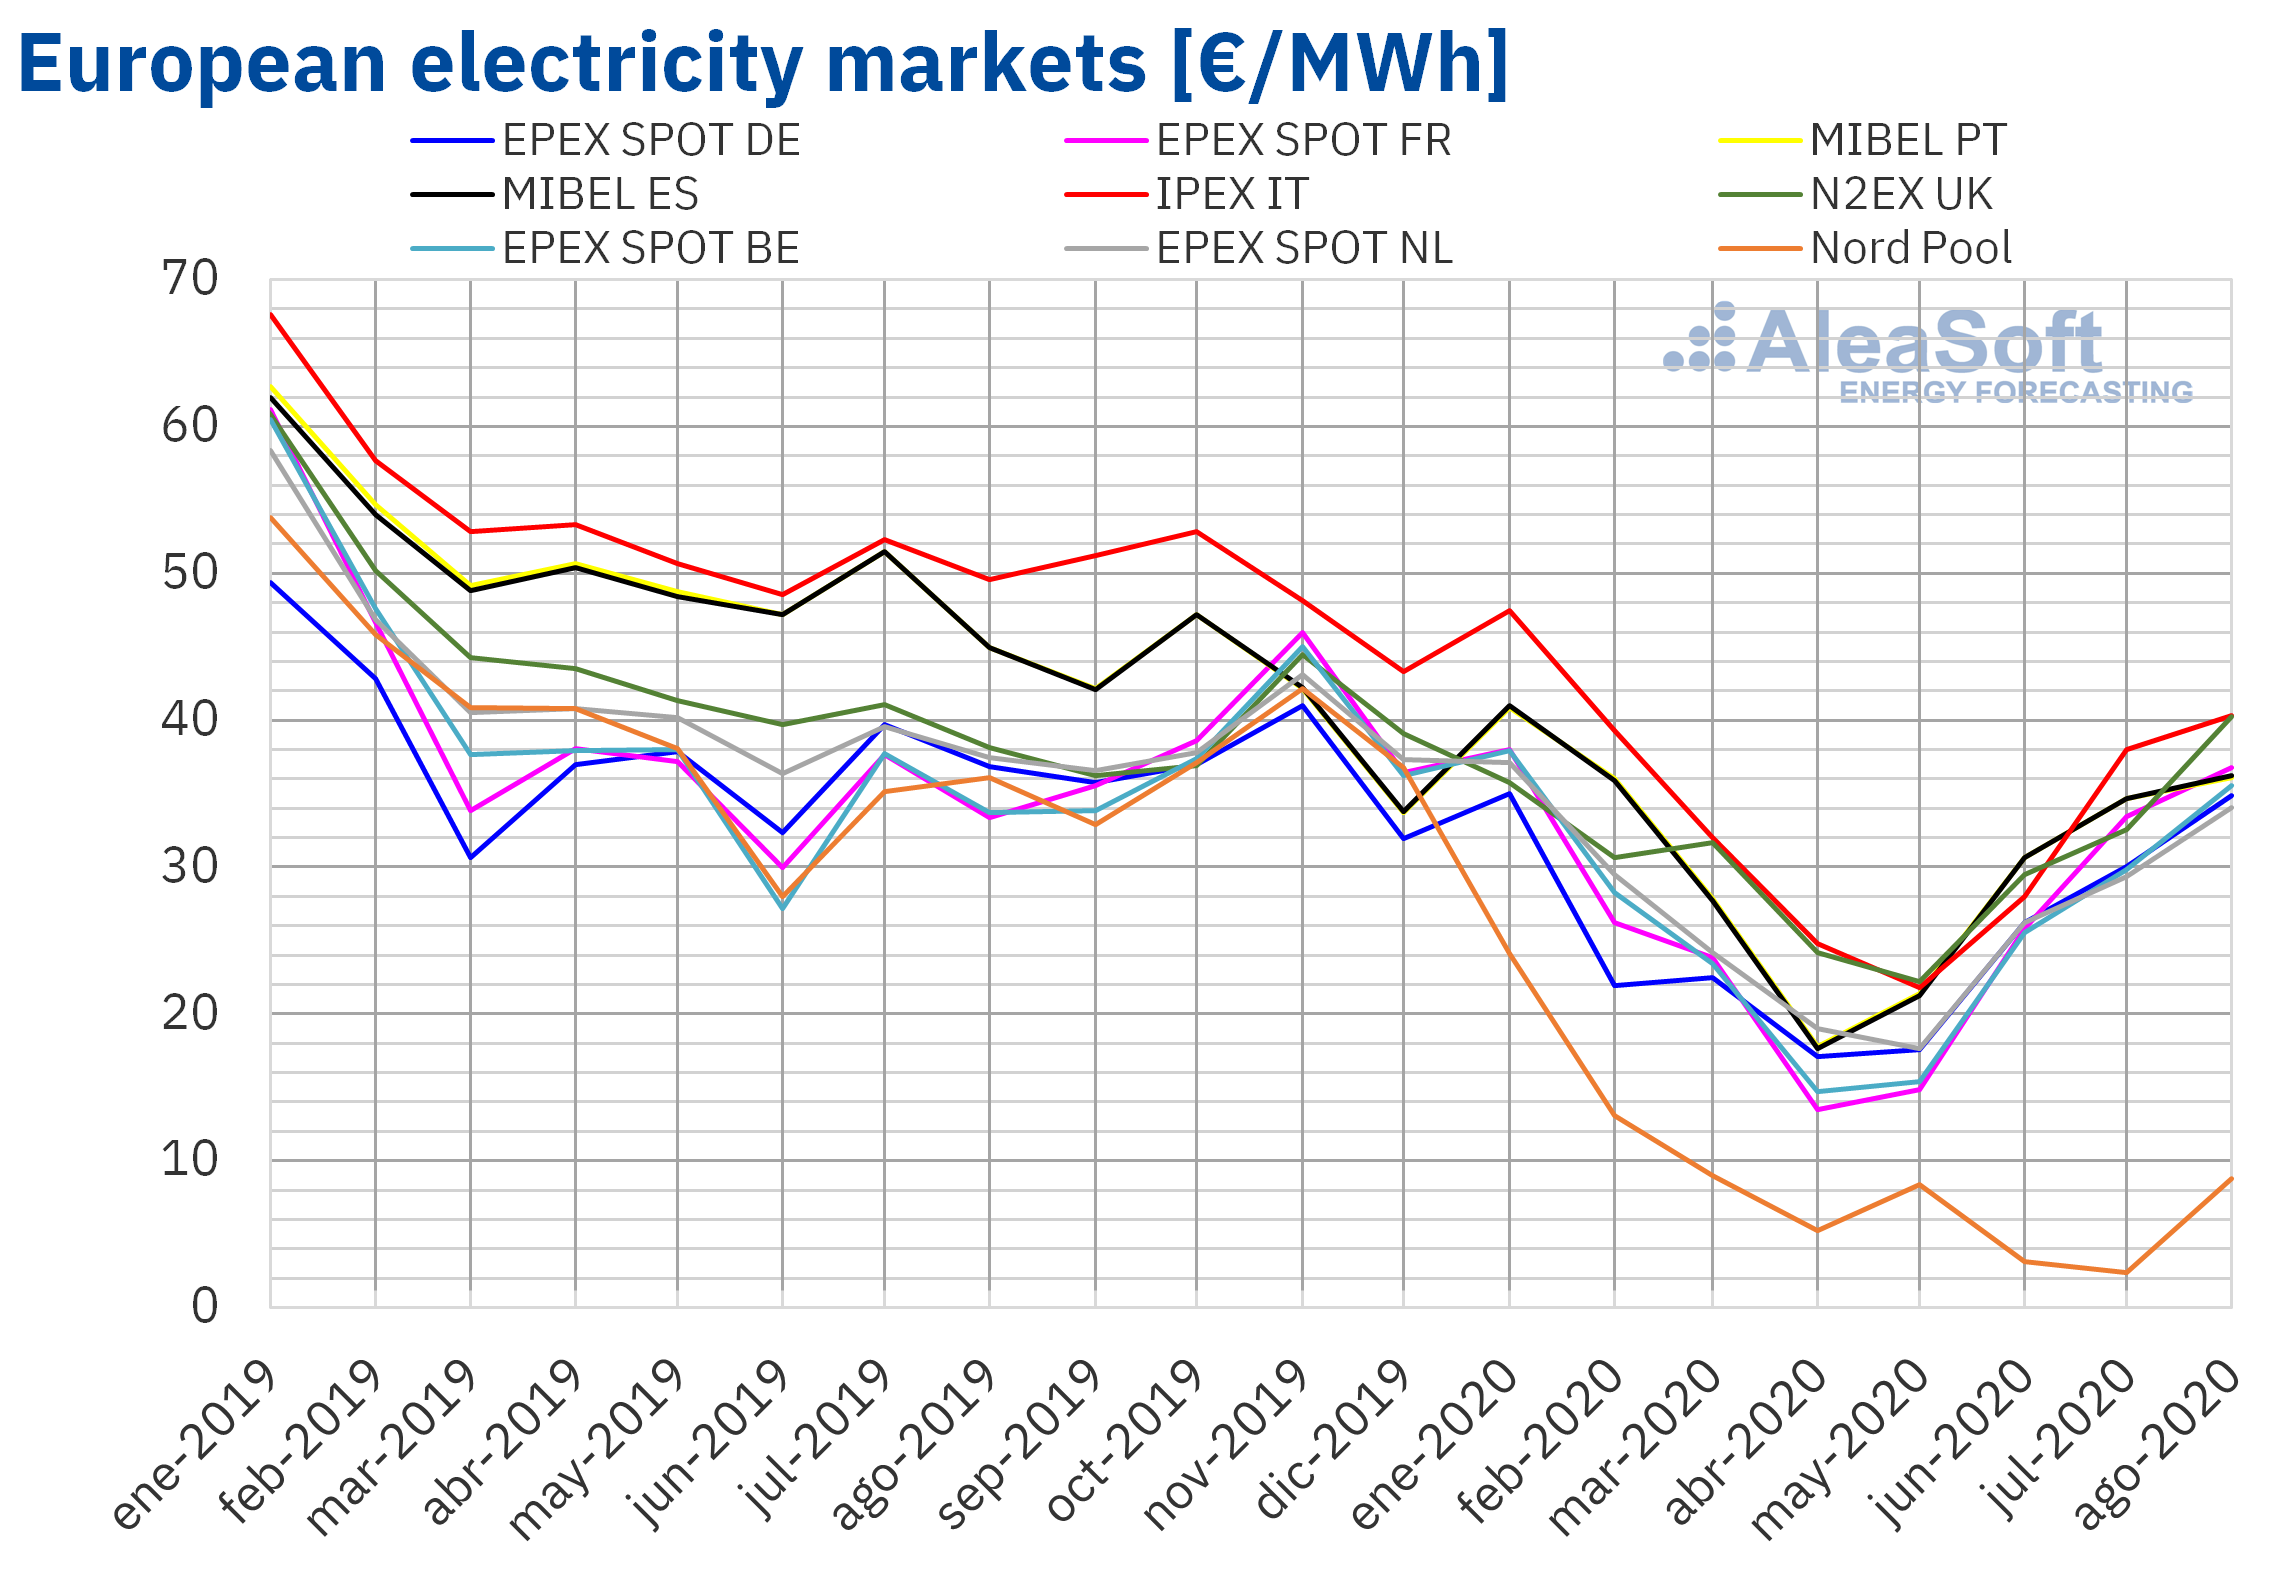 AleaSoft - Monthly electricity market prices Europe